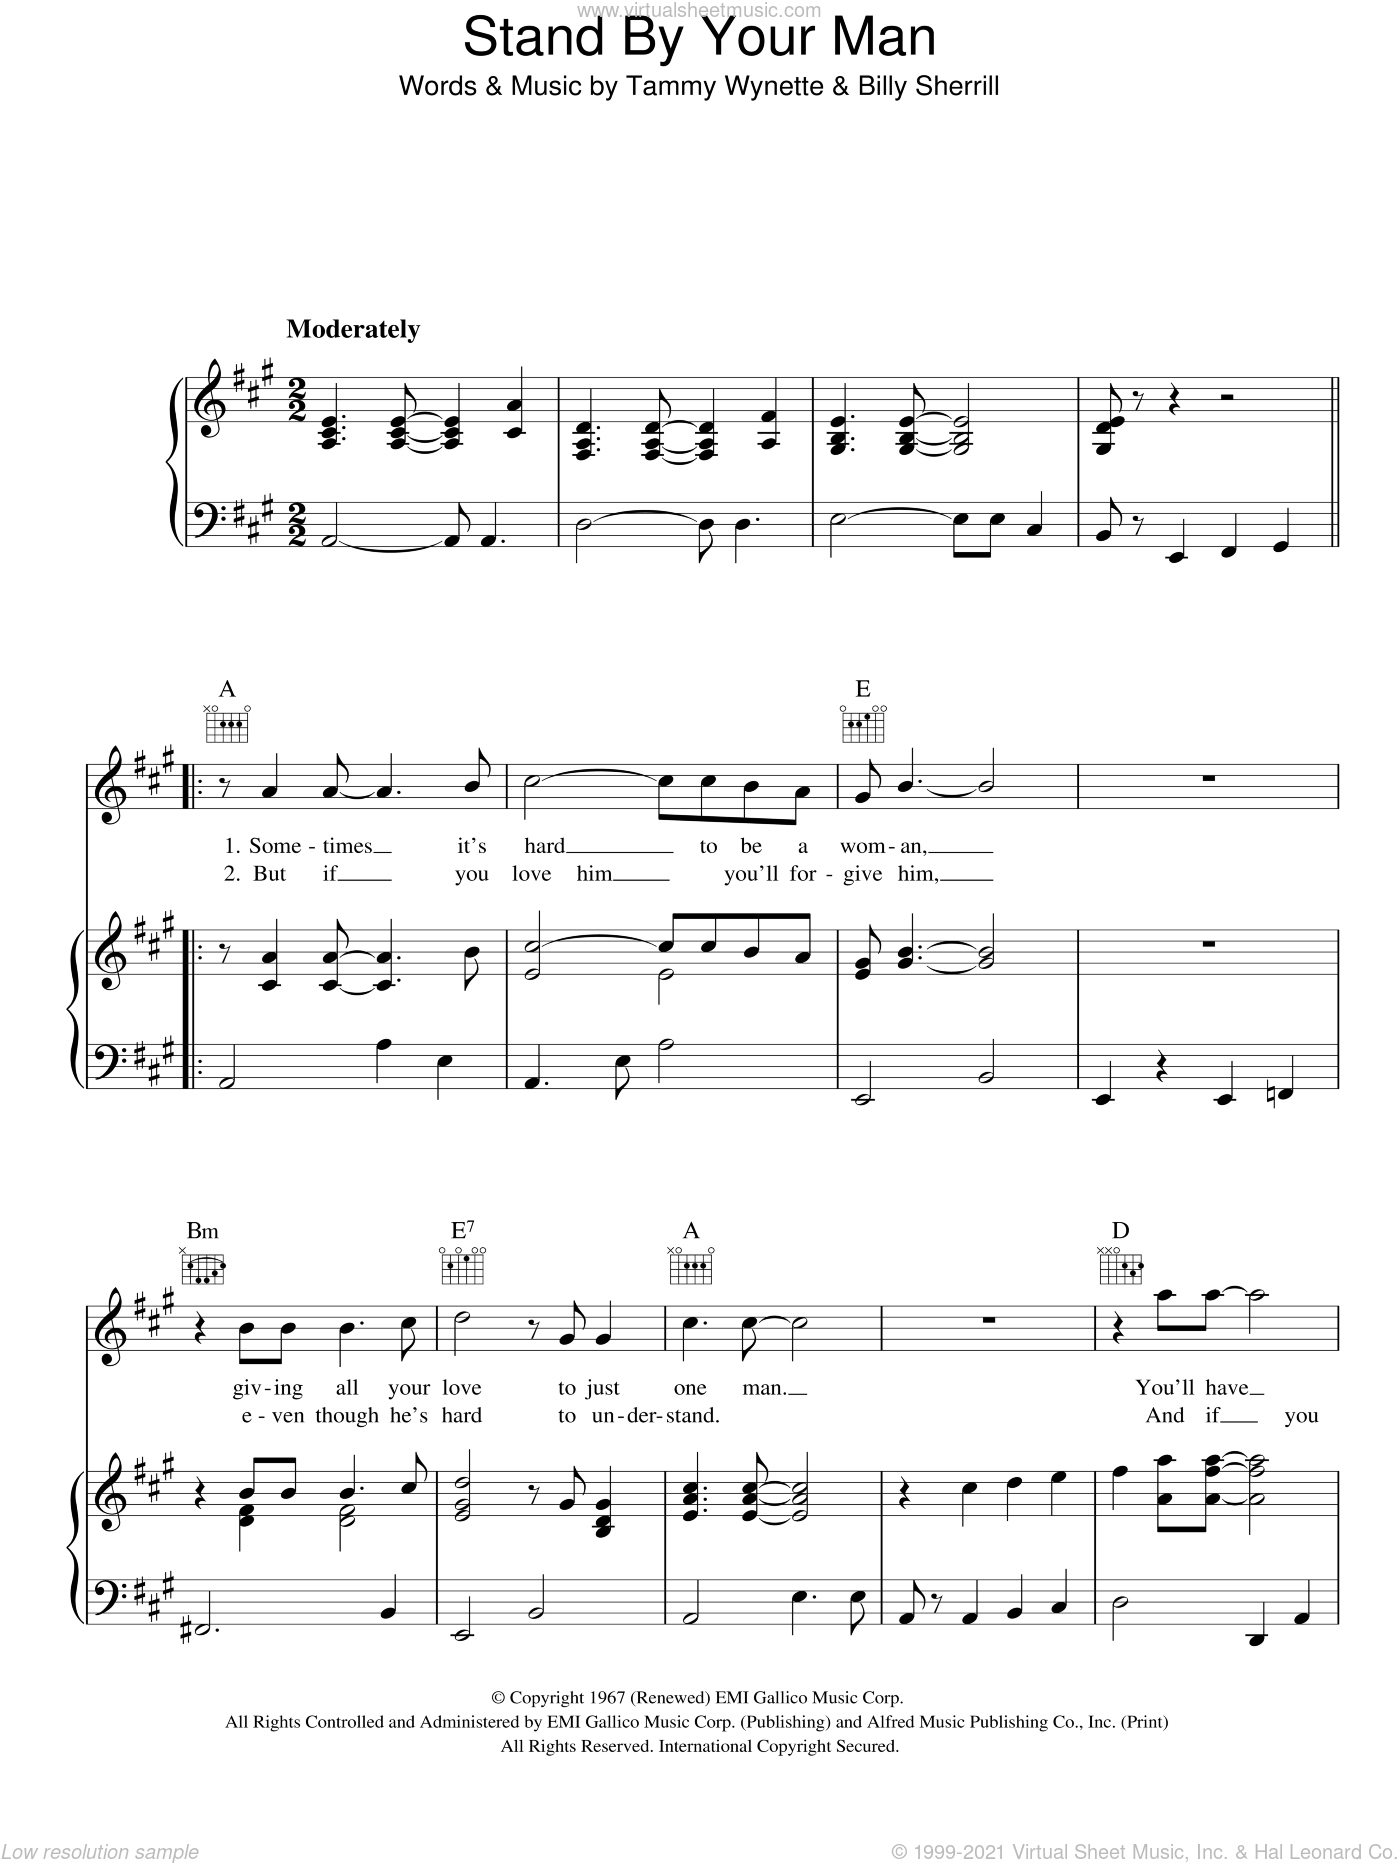 Stand By Your Man sheet music for voice, piano or guitar by Tammy Wynette and Billy Sherrill, intermediate skill level